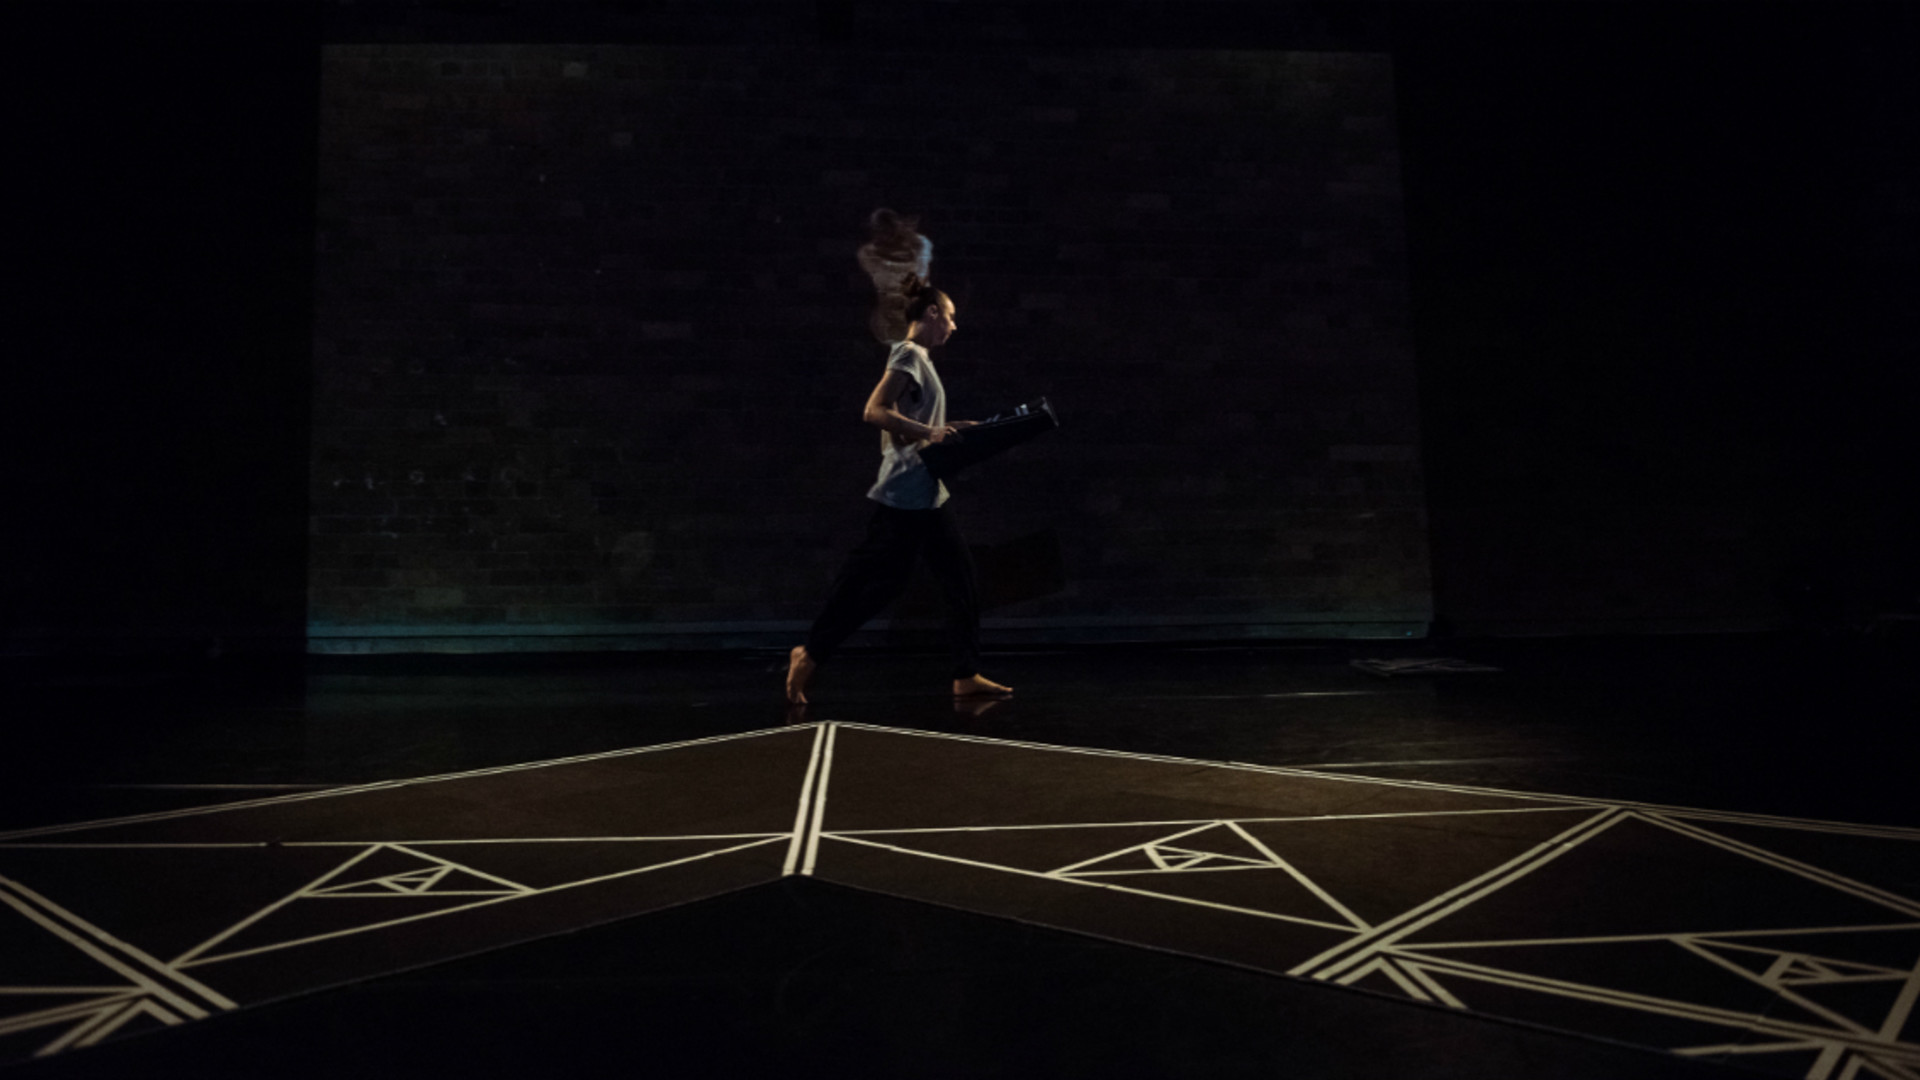 A dancer runs along a black floor with white geometric shapes painted on it.